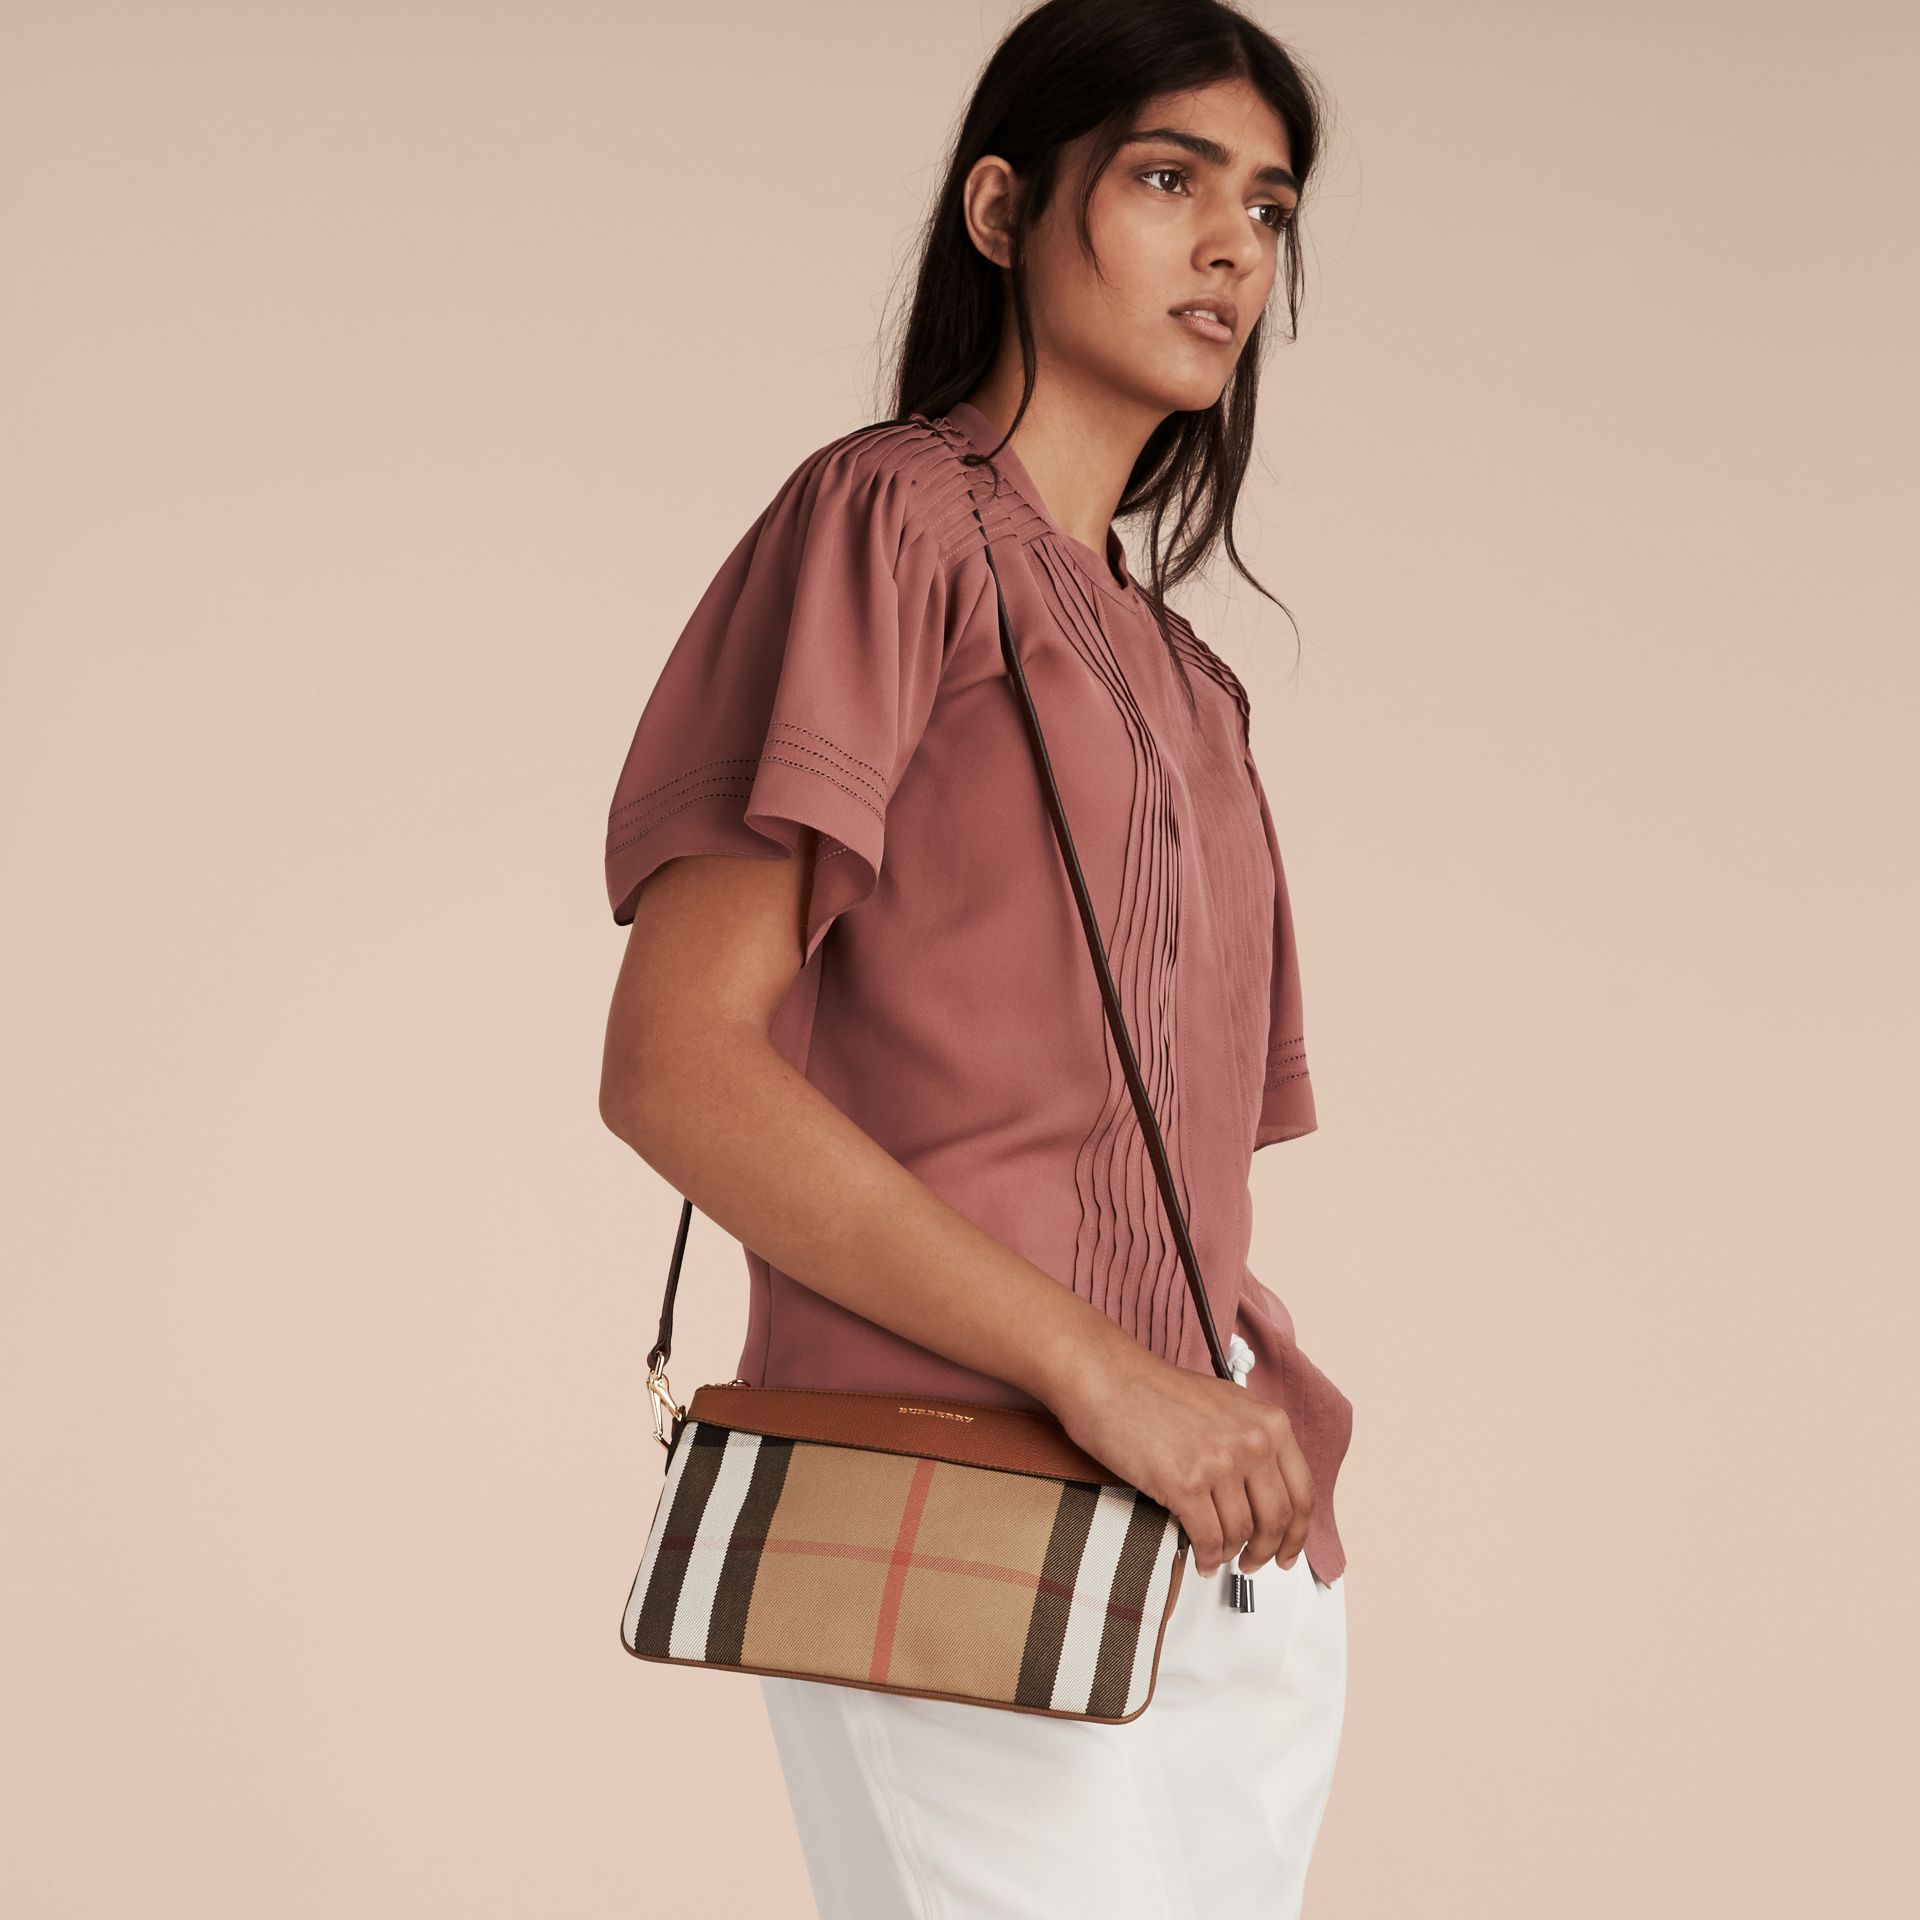 House Check and Leather Clutch Bag in Tan - Women | Burberry Canada - gallery image 3